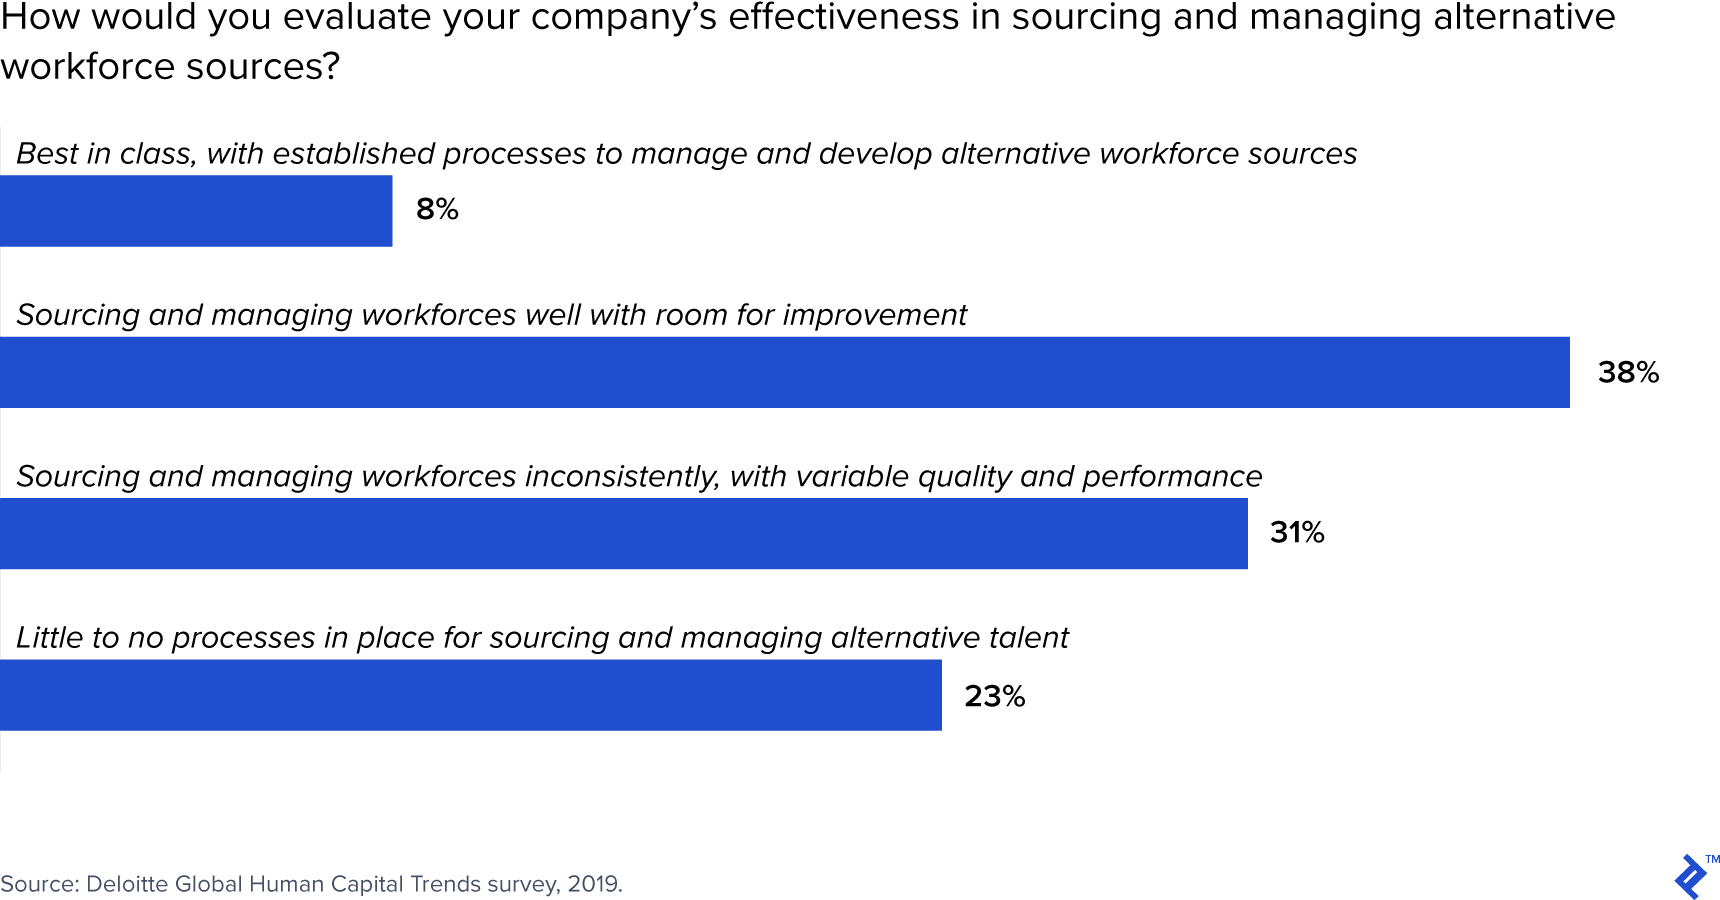 When it comes to managing a contingent workforce, most companies report unsatisfactory processes.